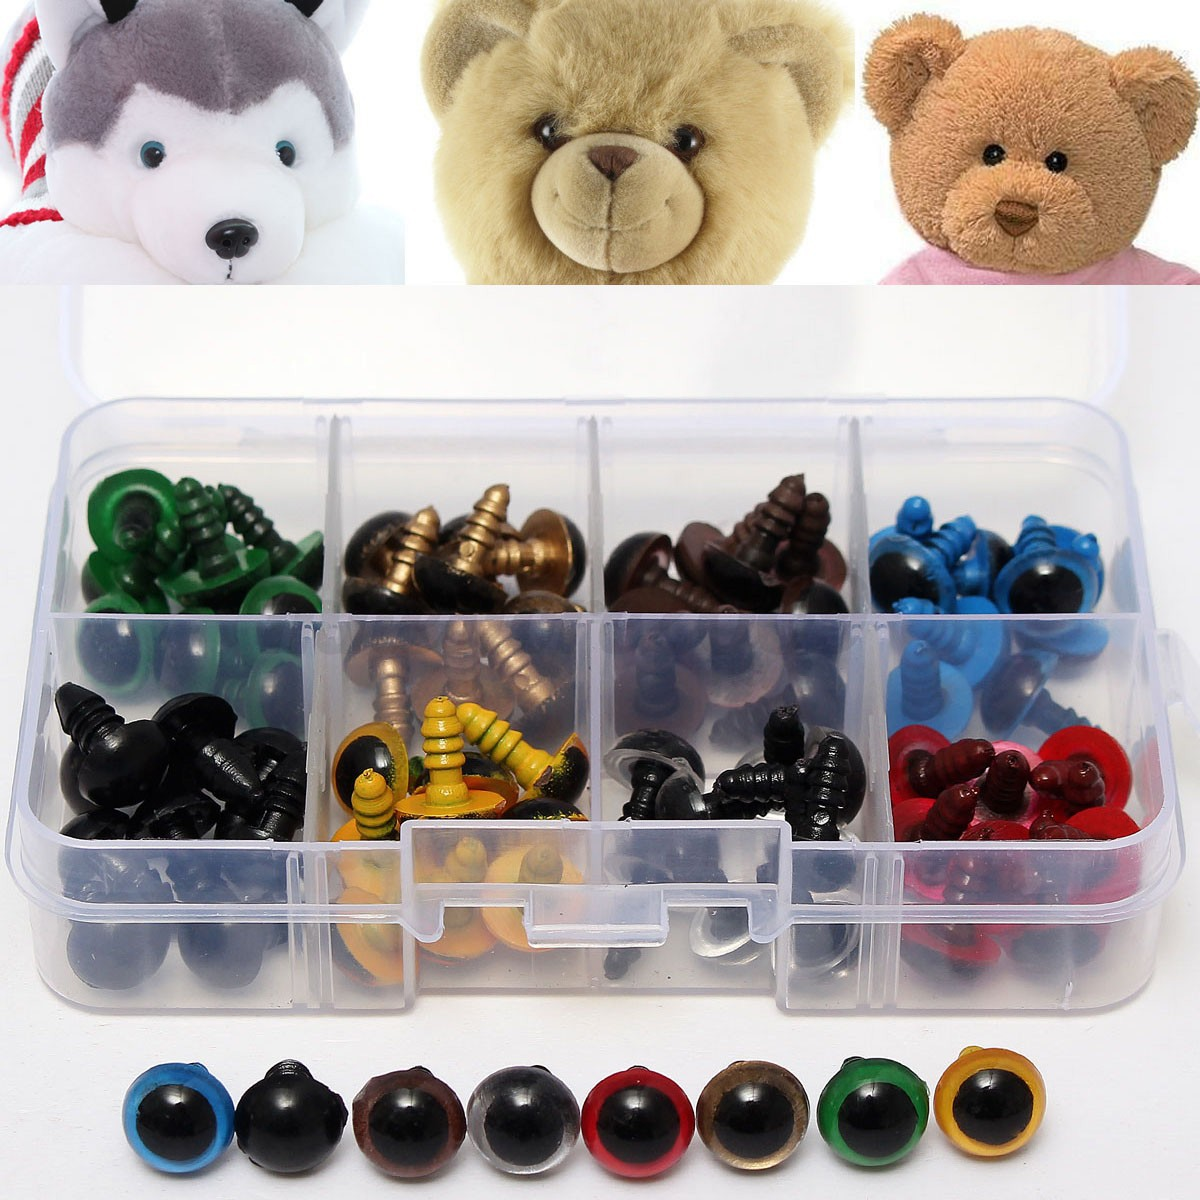 80pcs 8 Mixed Color Plastic Safety Eyes Washers for Animal Toy Teddy Bea EVT